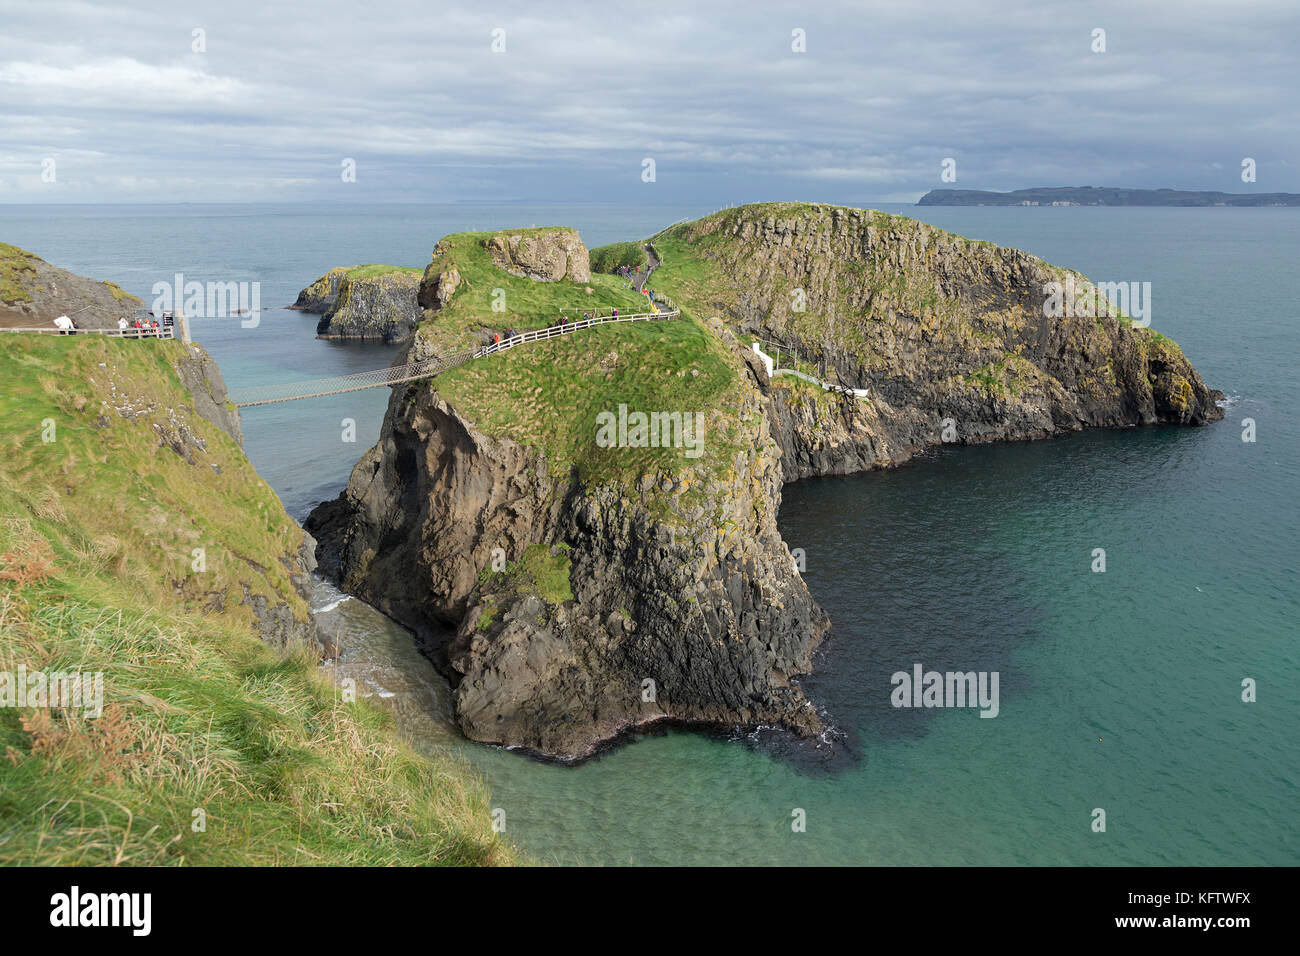 Carrick-a-Rede Rope Bridge, Ballintoy, Co. Antrim, Northern Ireland - Stock Image